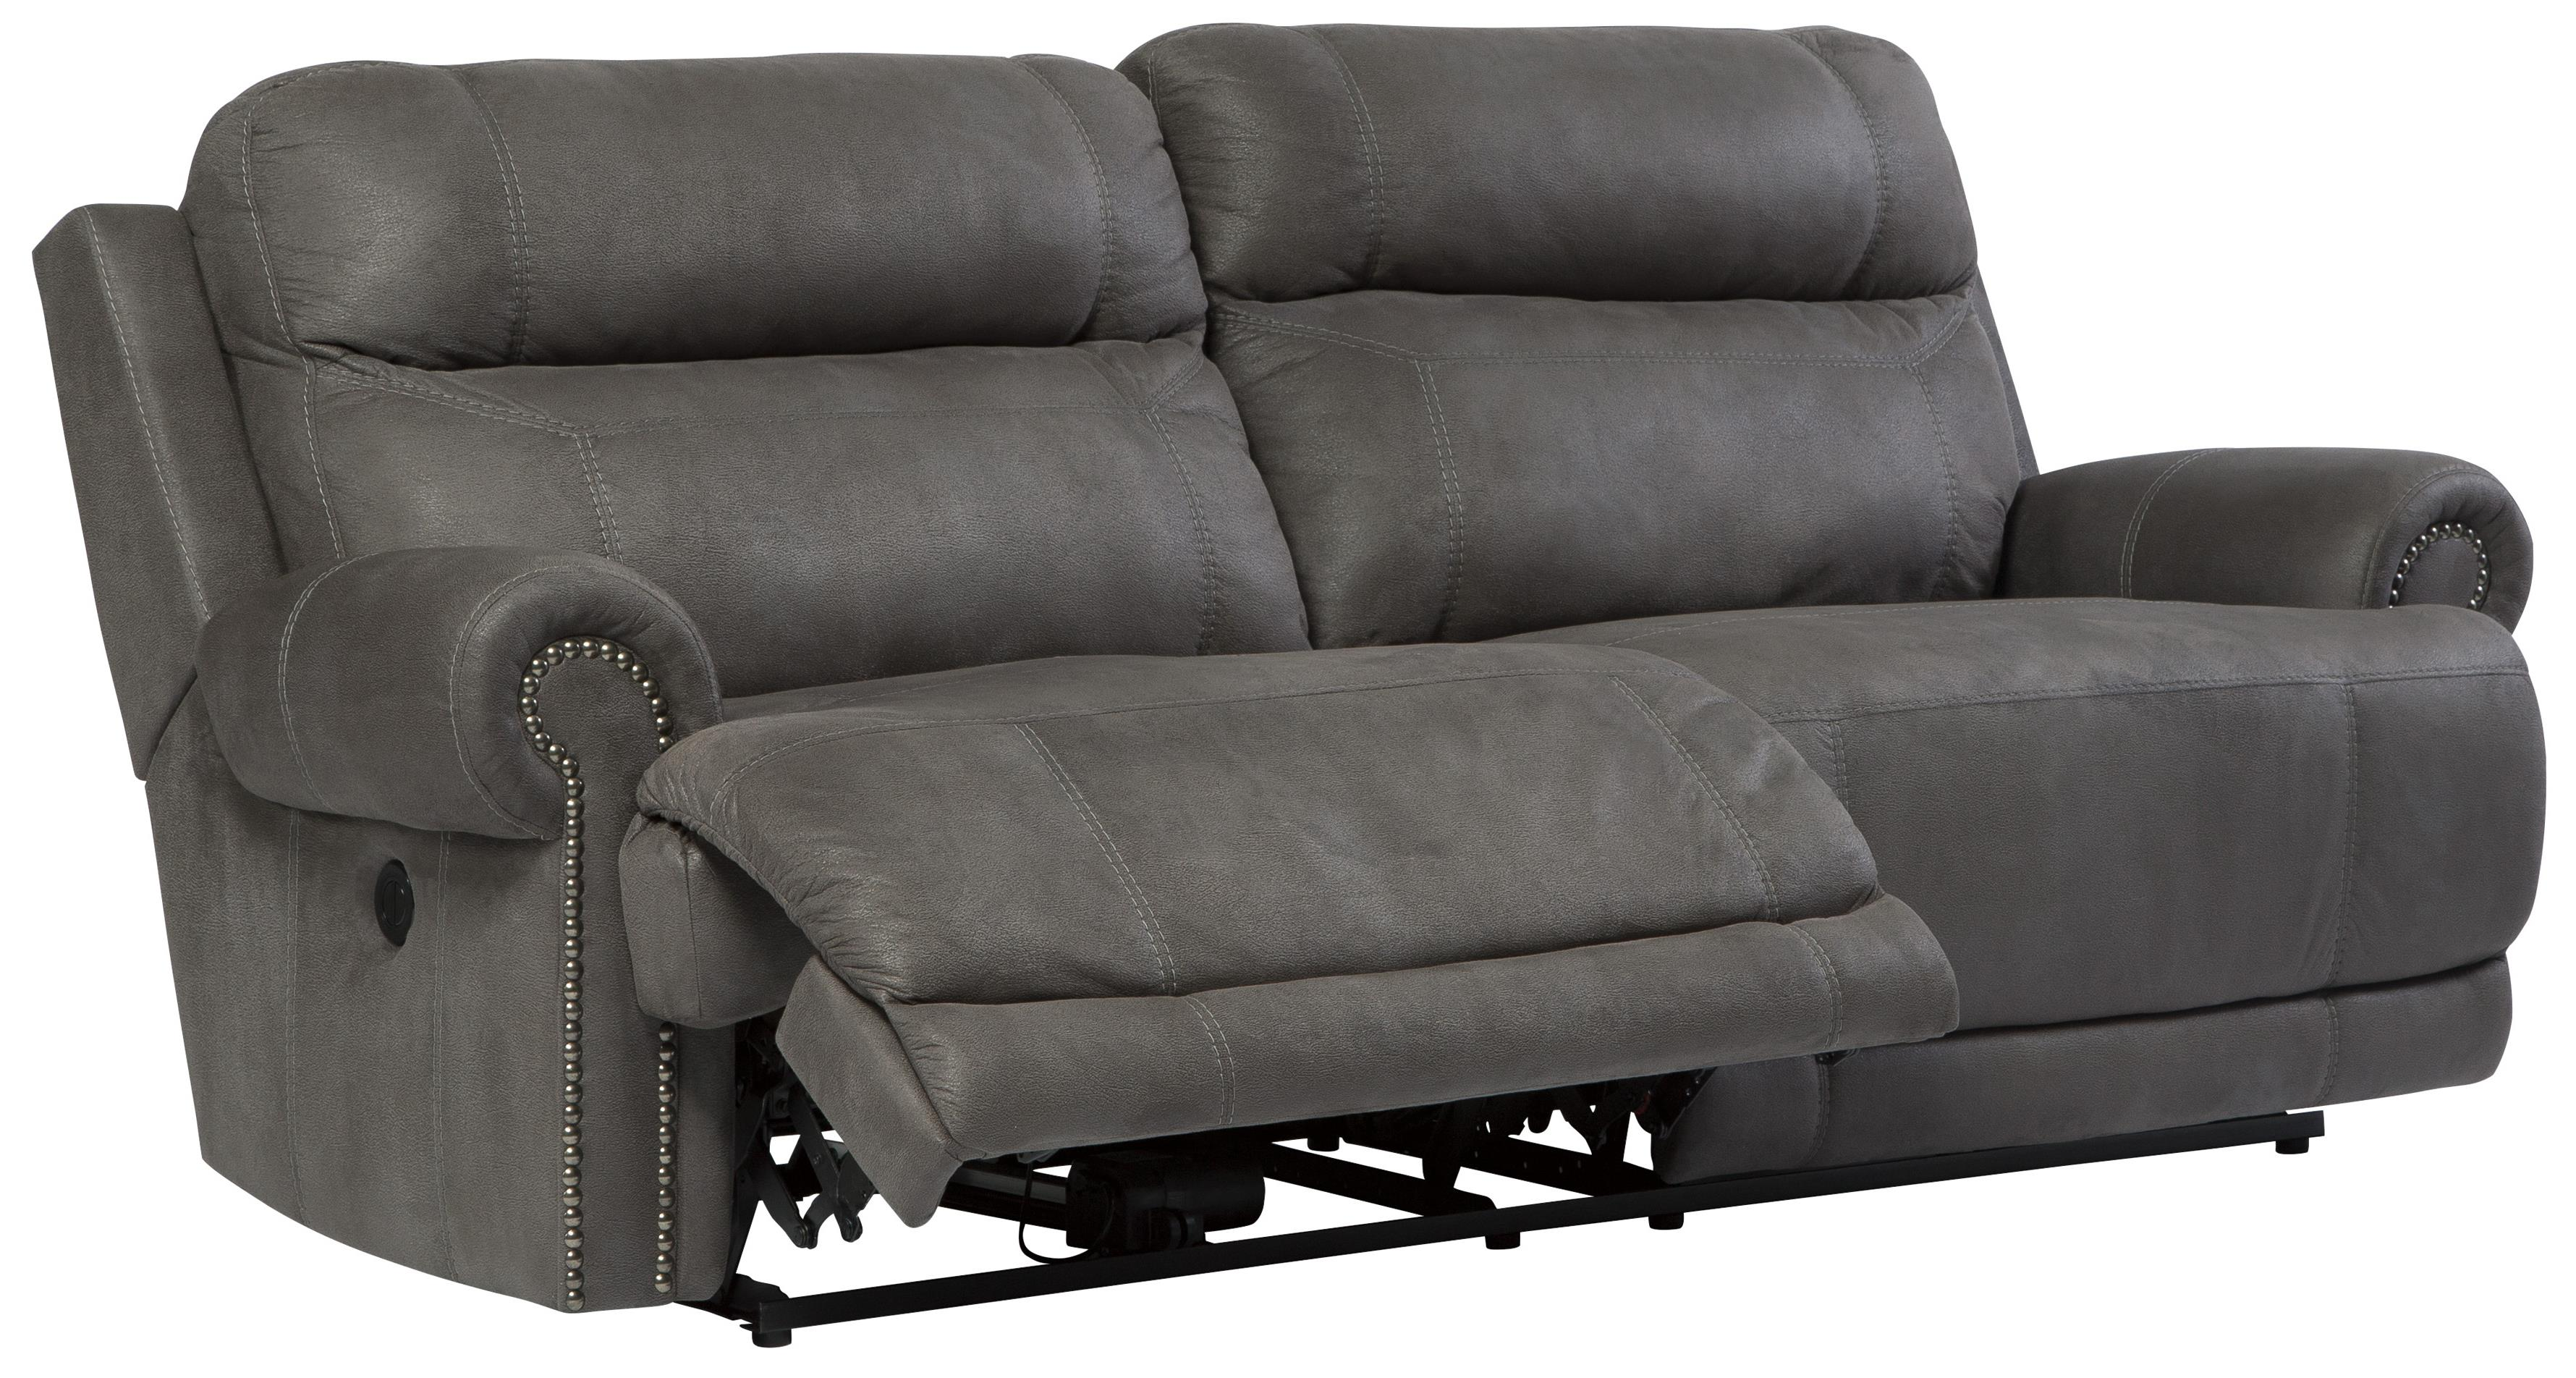 2 Seat Faux Leather Reclining Power Sofa with Rolled Arms with ...